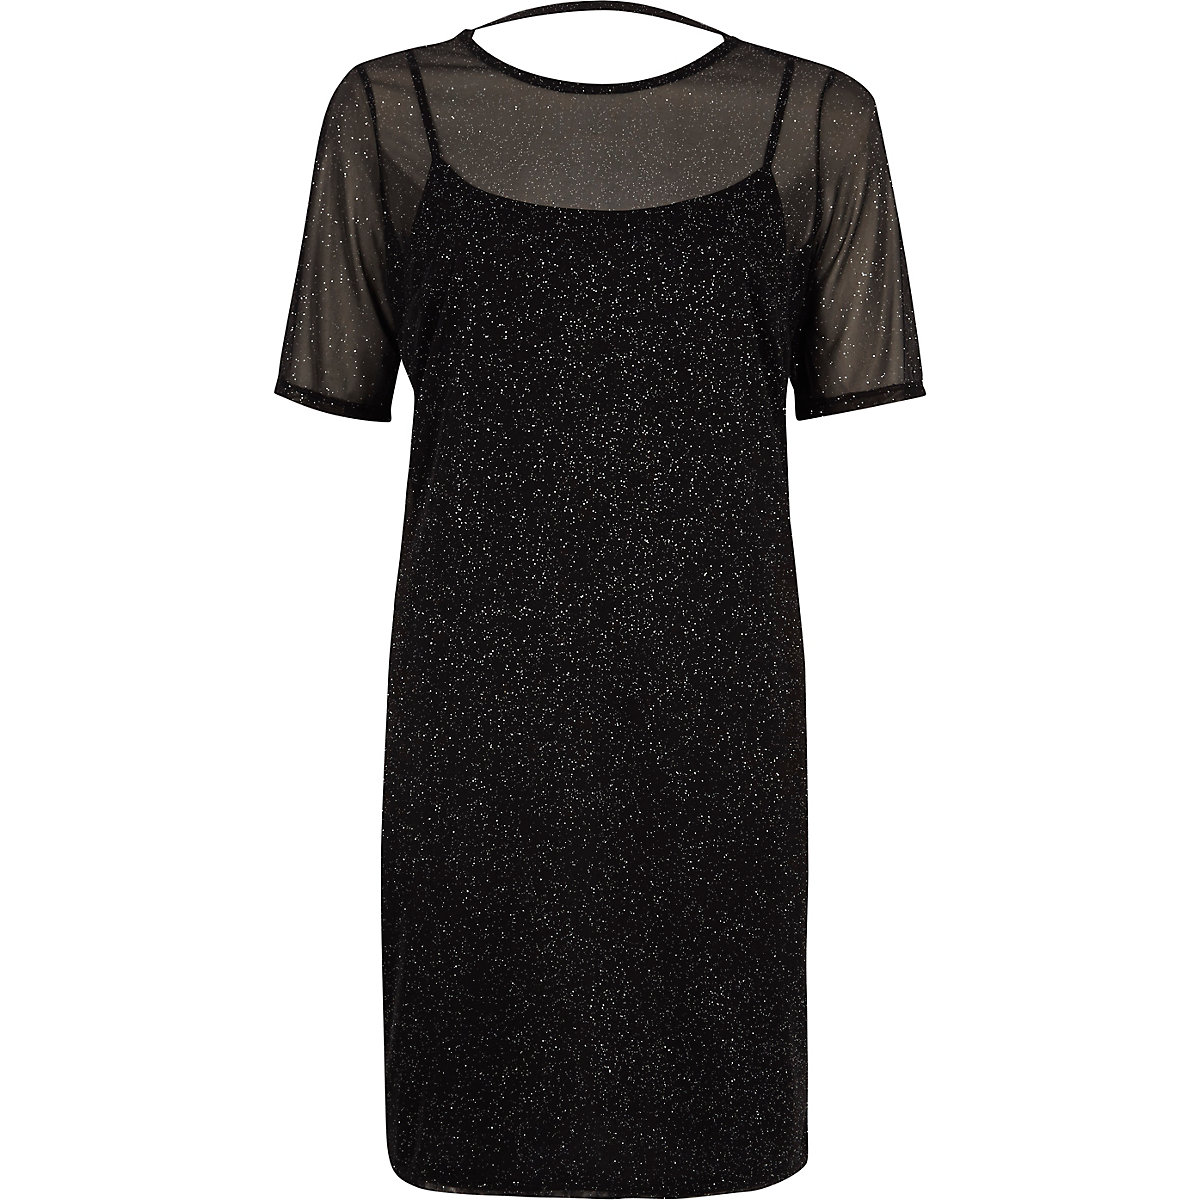 Black glitter mesh T-shirt dress